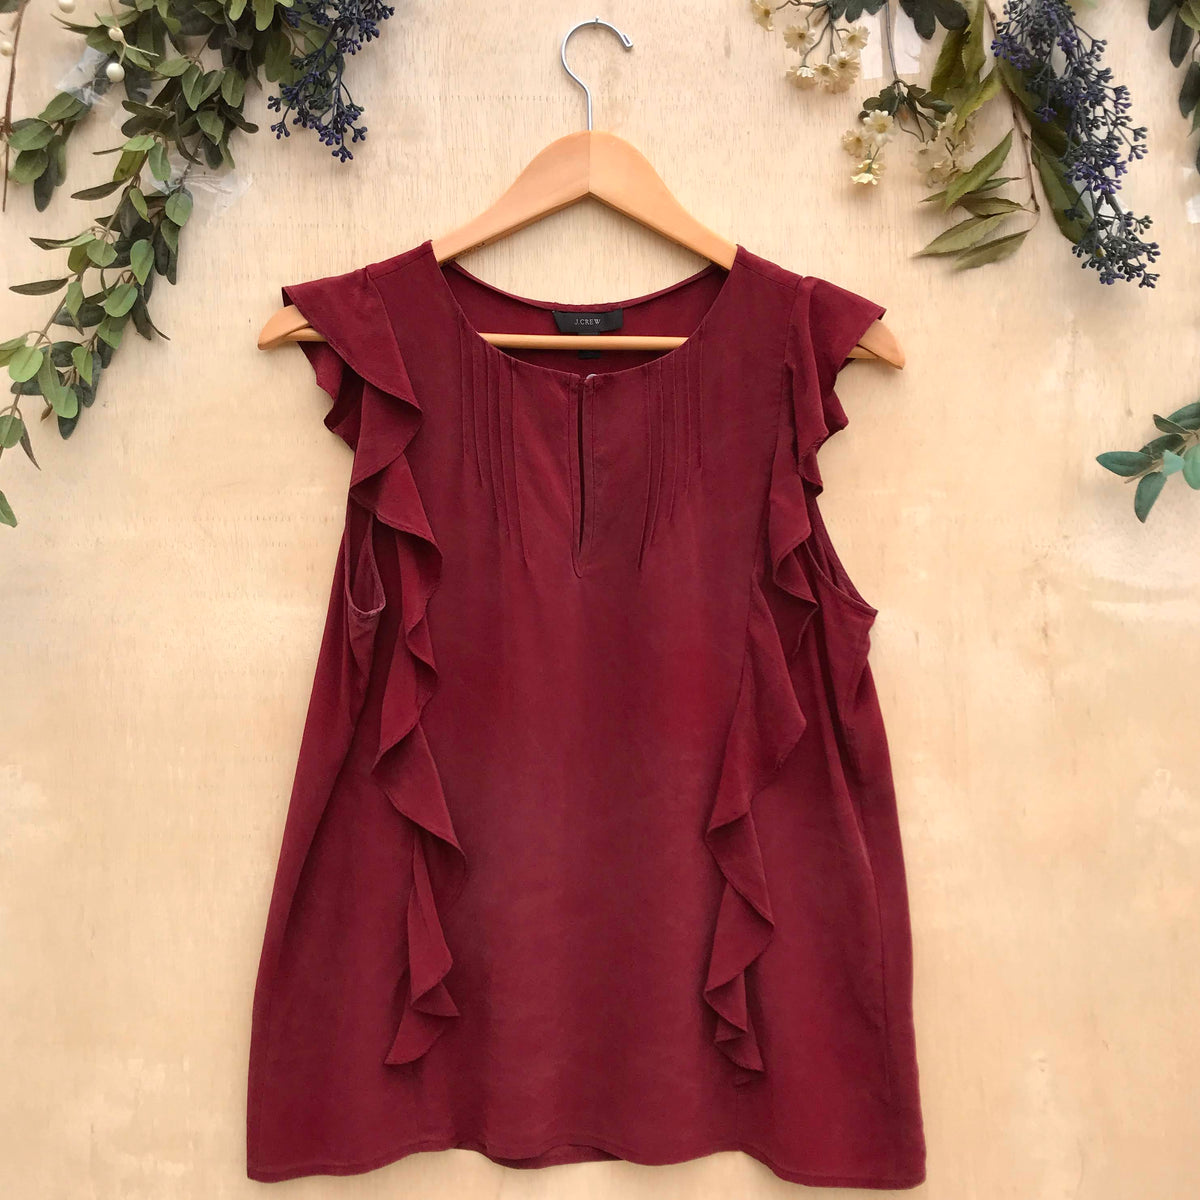 J. Crew Silk Red Sleeveless Ruffle Top